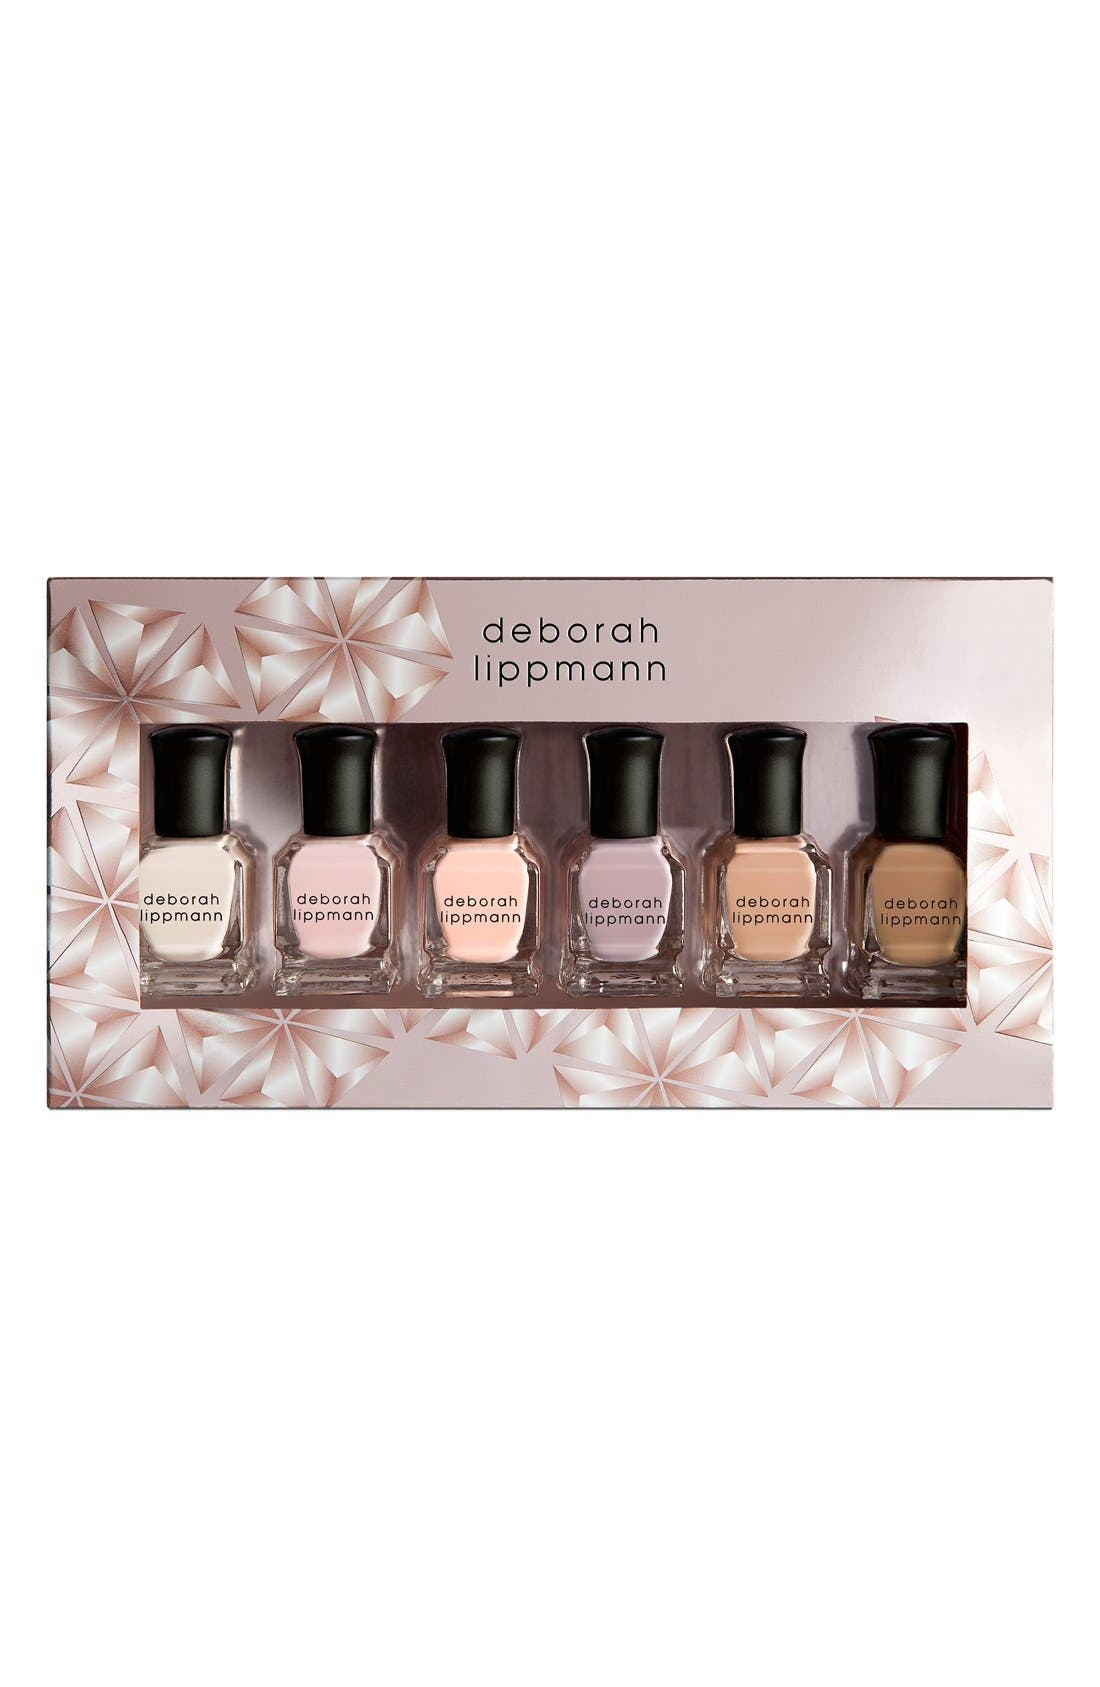 Deborah Lippmann 'Undressed' Nail Polish Set ($72 Value)